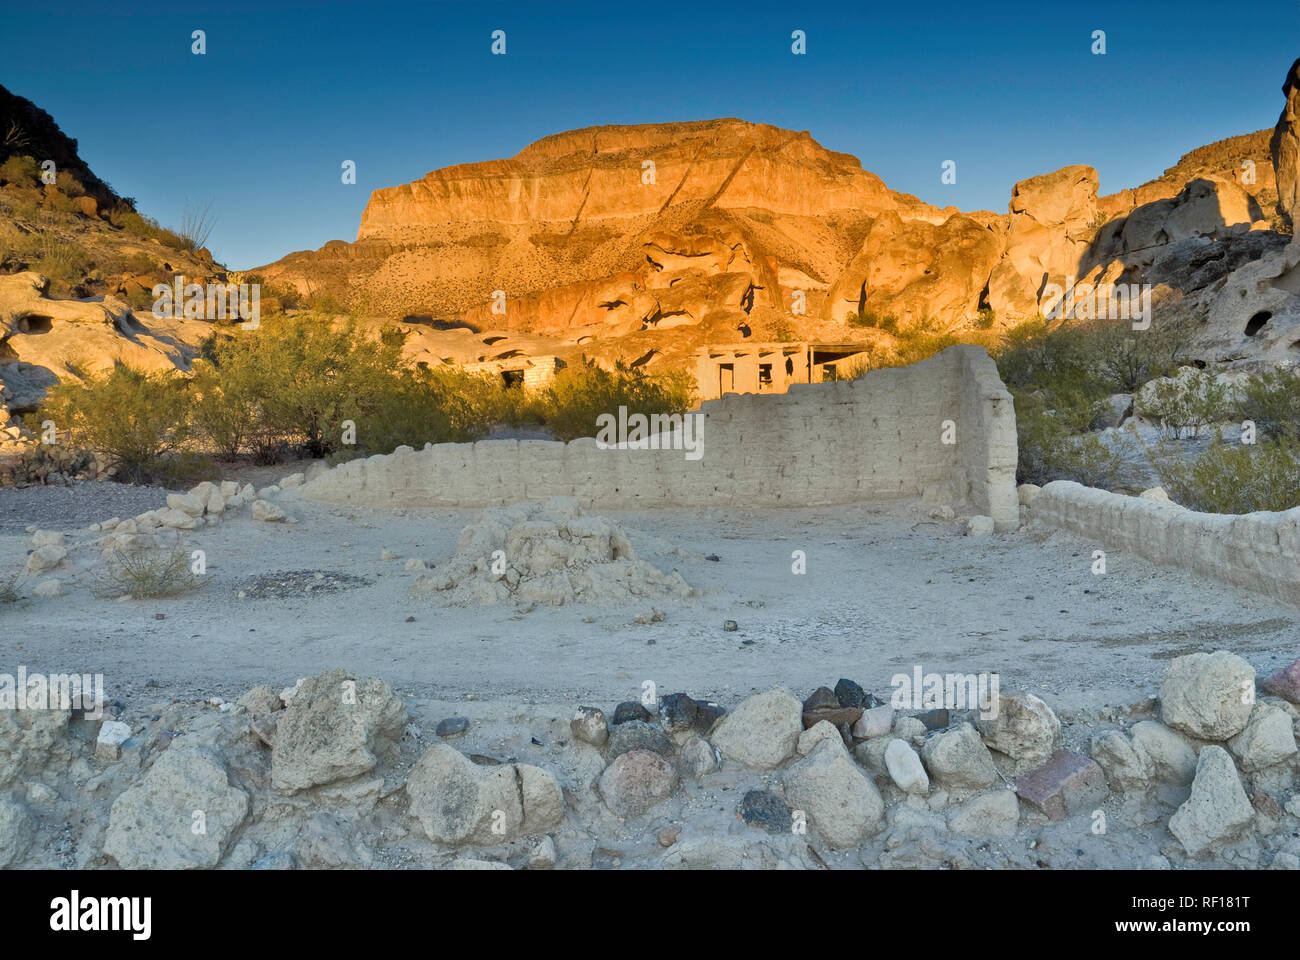 Ruins of adobe houses near abandoned mines in Three Dike Hill area in Bofecillos Mountains, Chihuahuan Desert, Big Bend Ranch State Park, Texas, USA - Stock Image